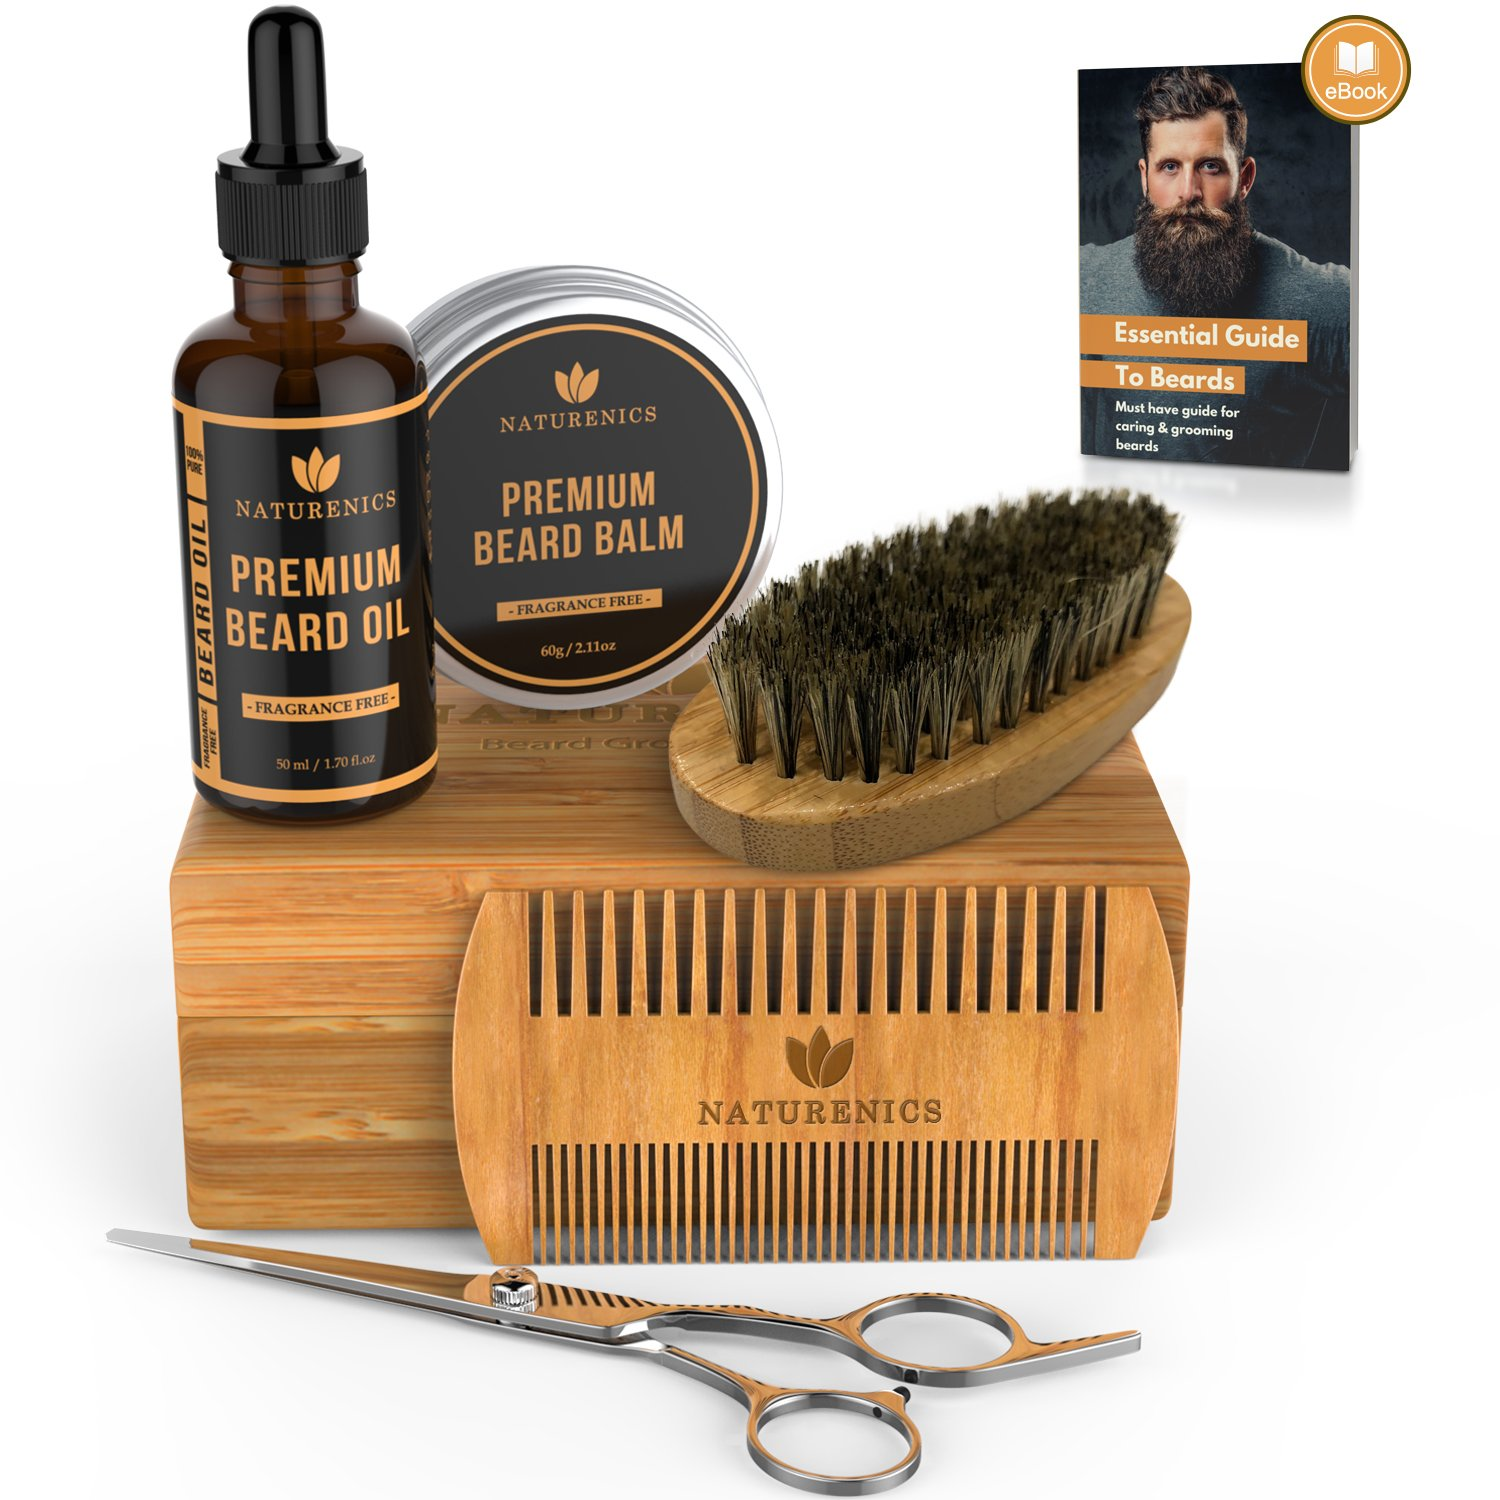 Naturenics Premium Beard Grooming & Trimming Kit for Mens Hair Care   Unscented Beard & Mustache Growth Oil, Wax Balm Butter, Brush, Dual Teeth Comb, Barber Scissors with Bamboo Gift Box & eBook